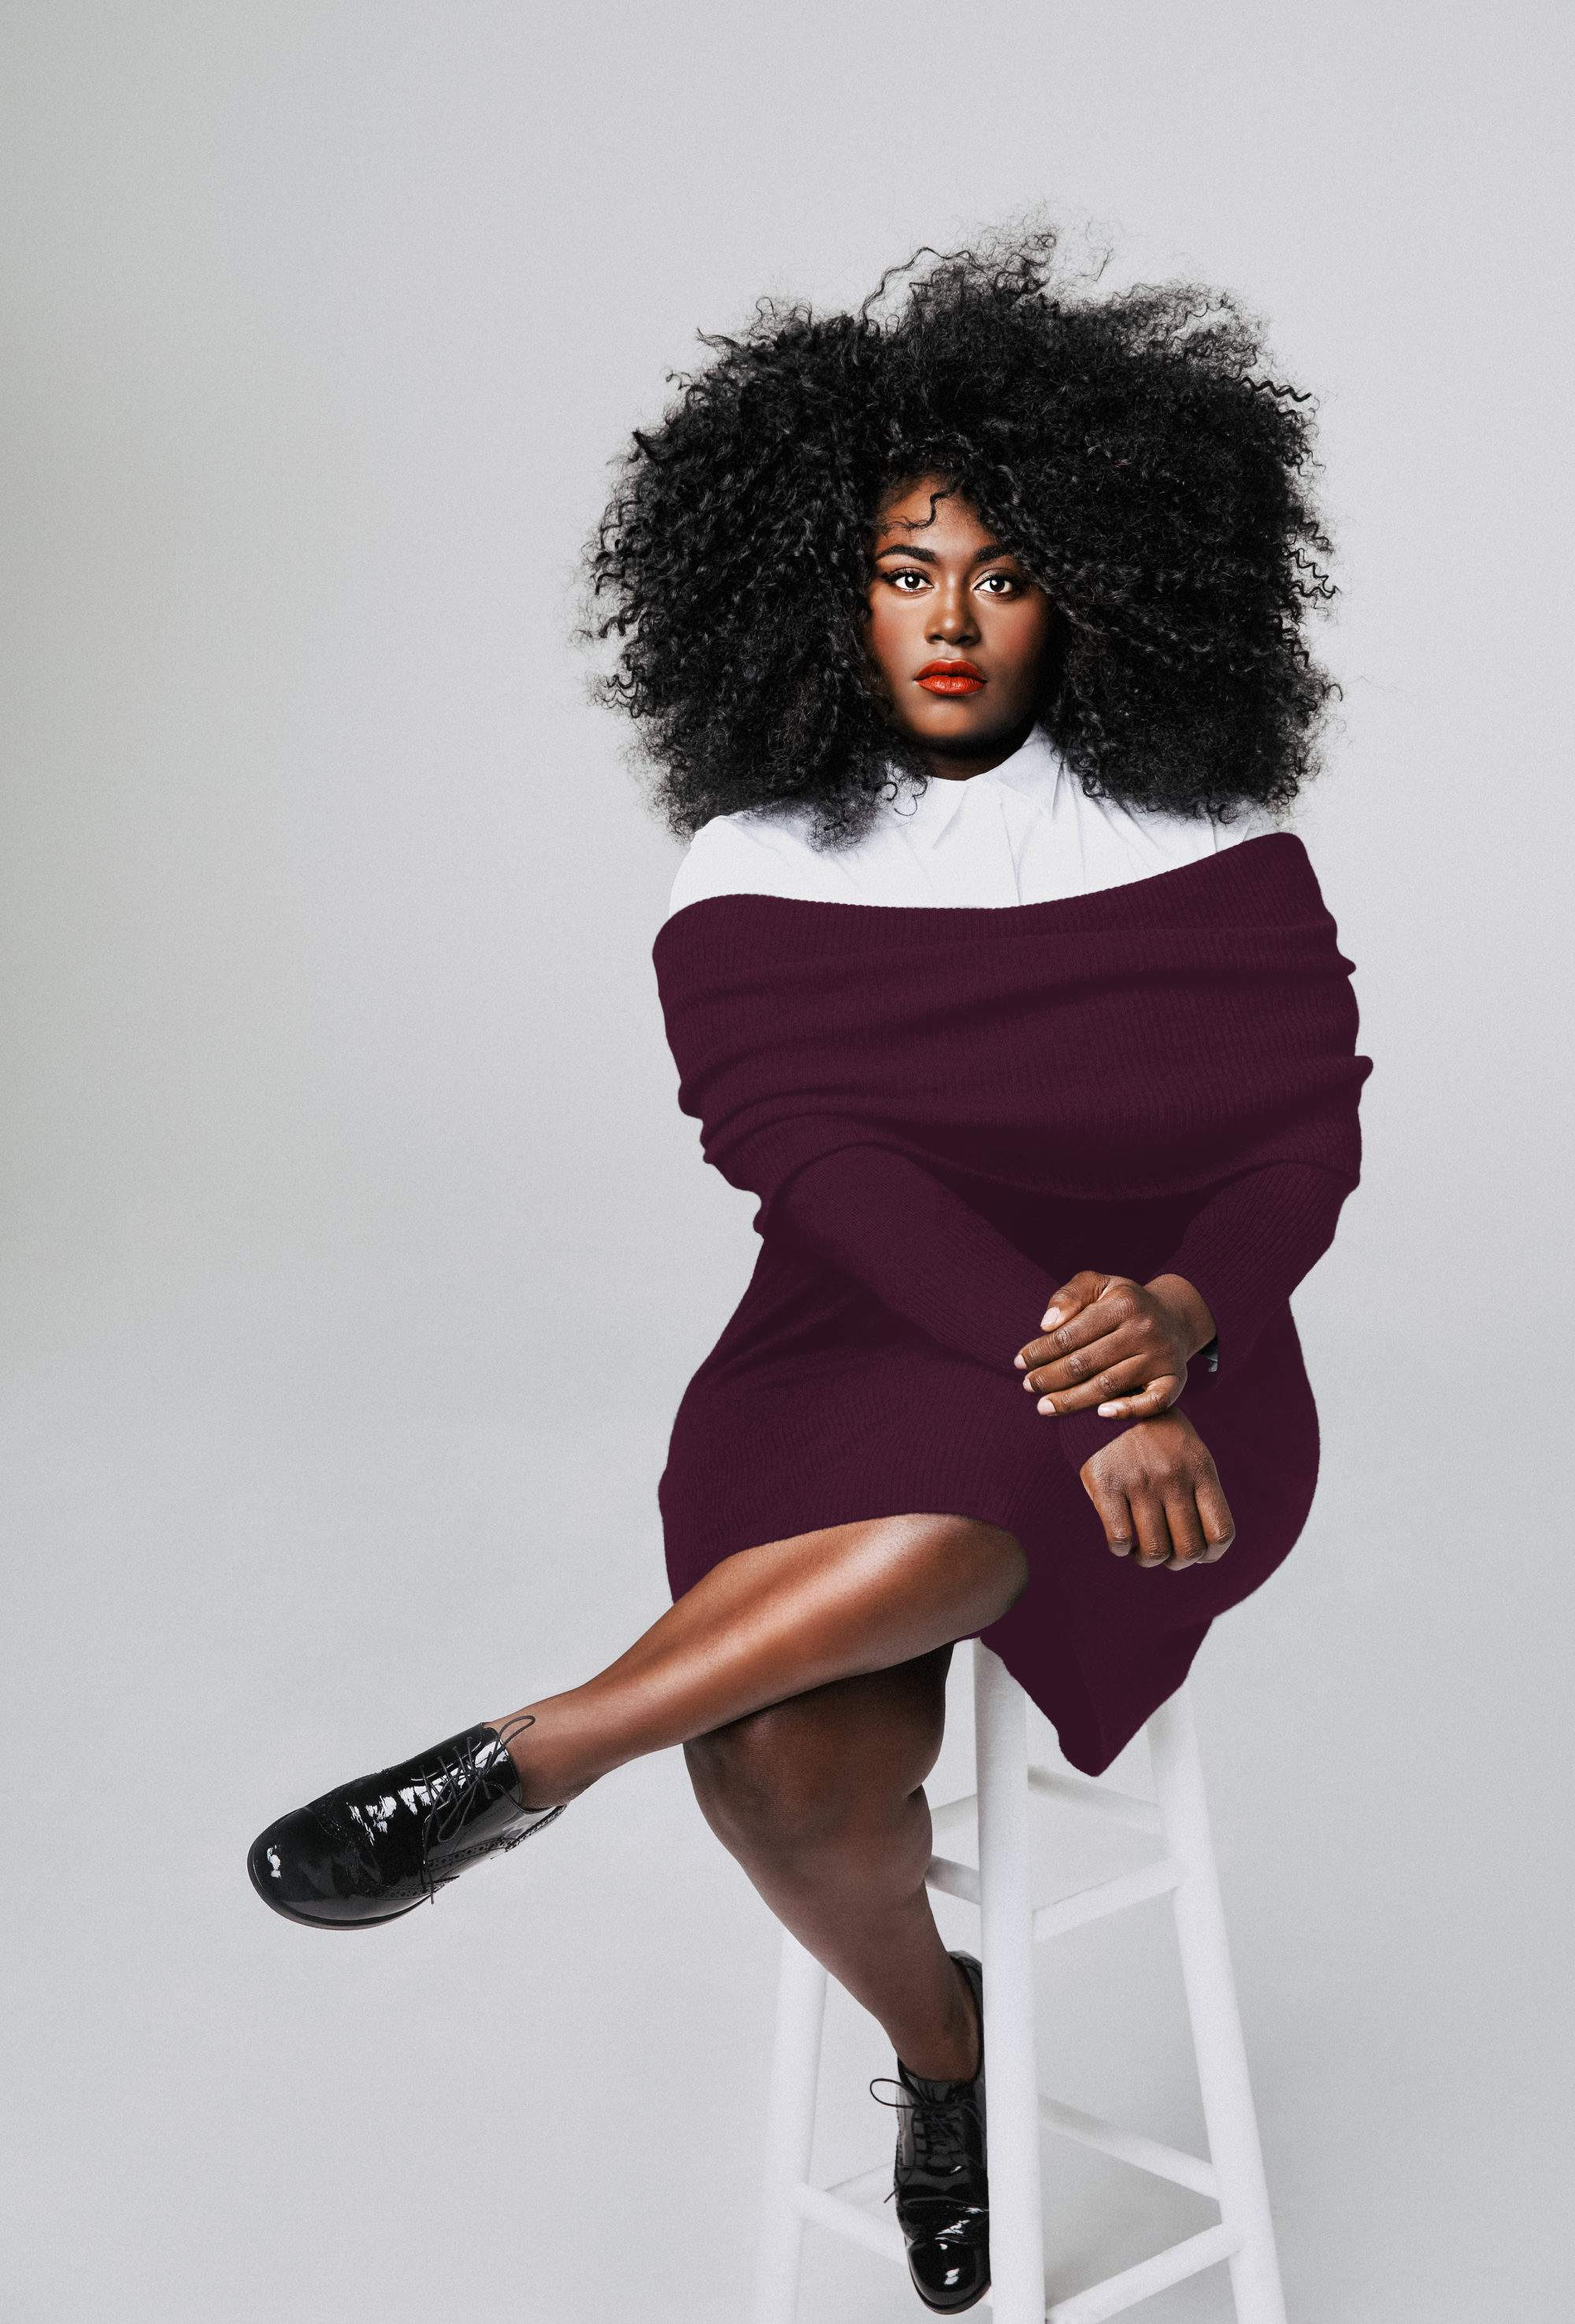 Danielle Brooks X Universal Standard Tria Collection